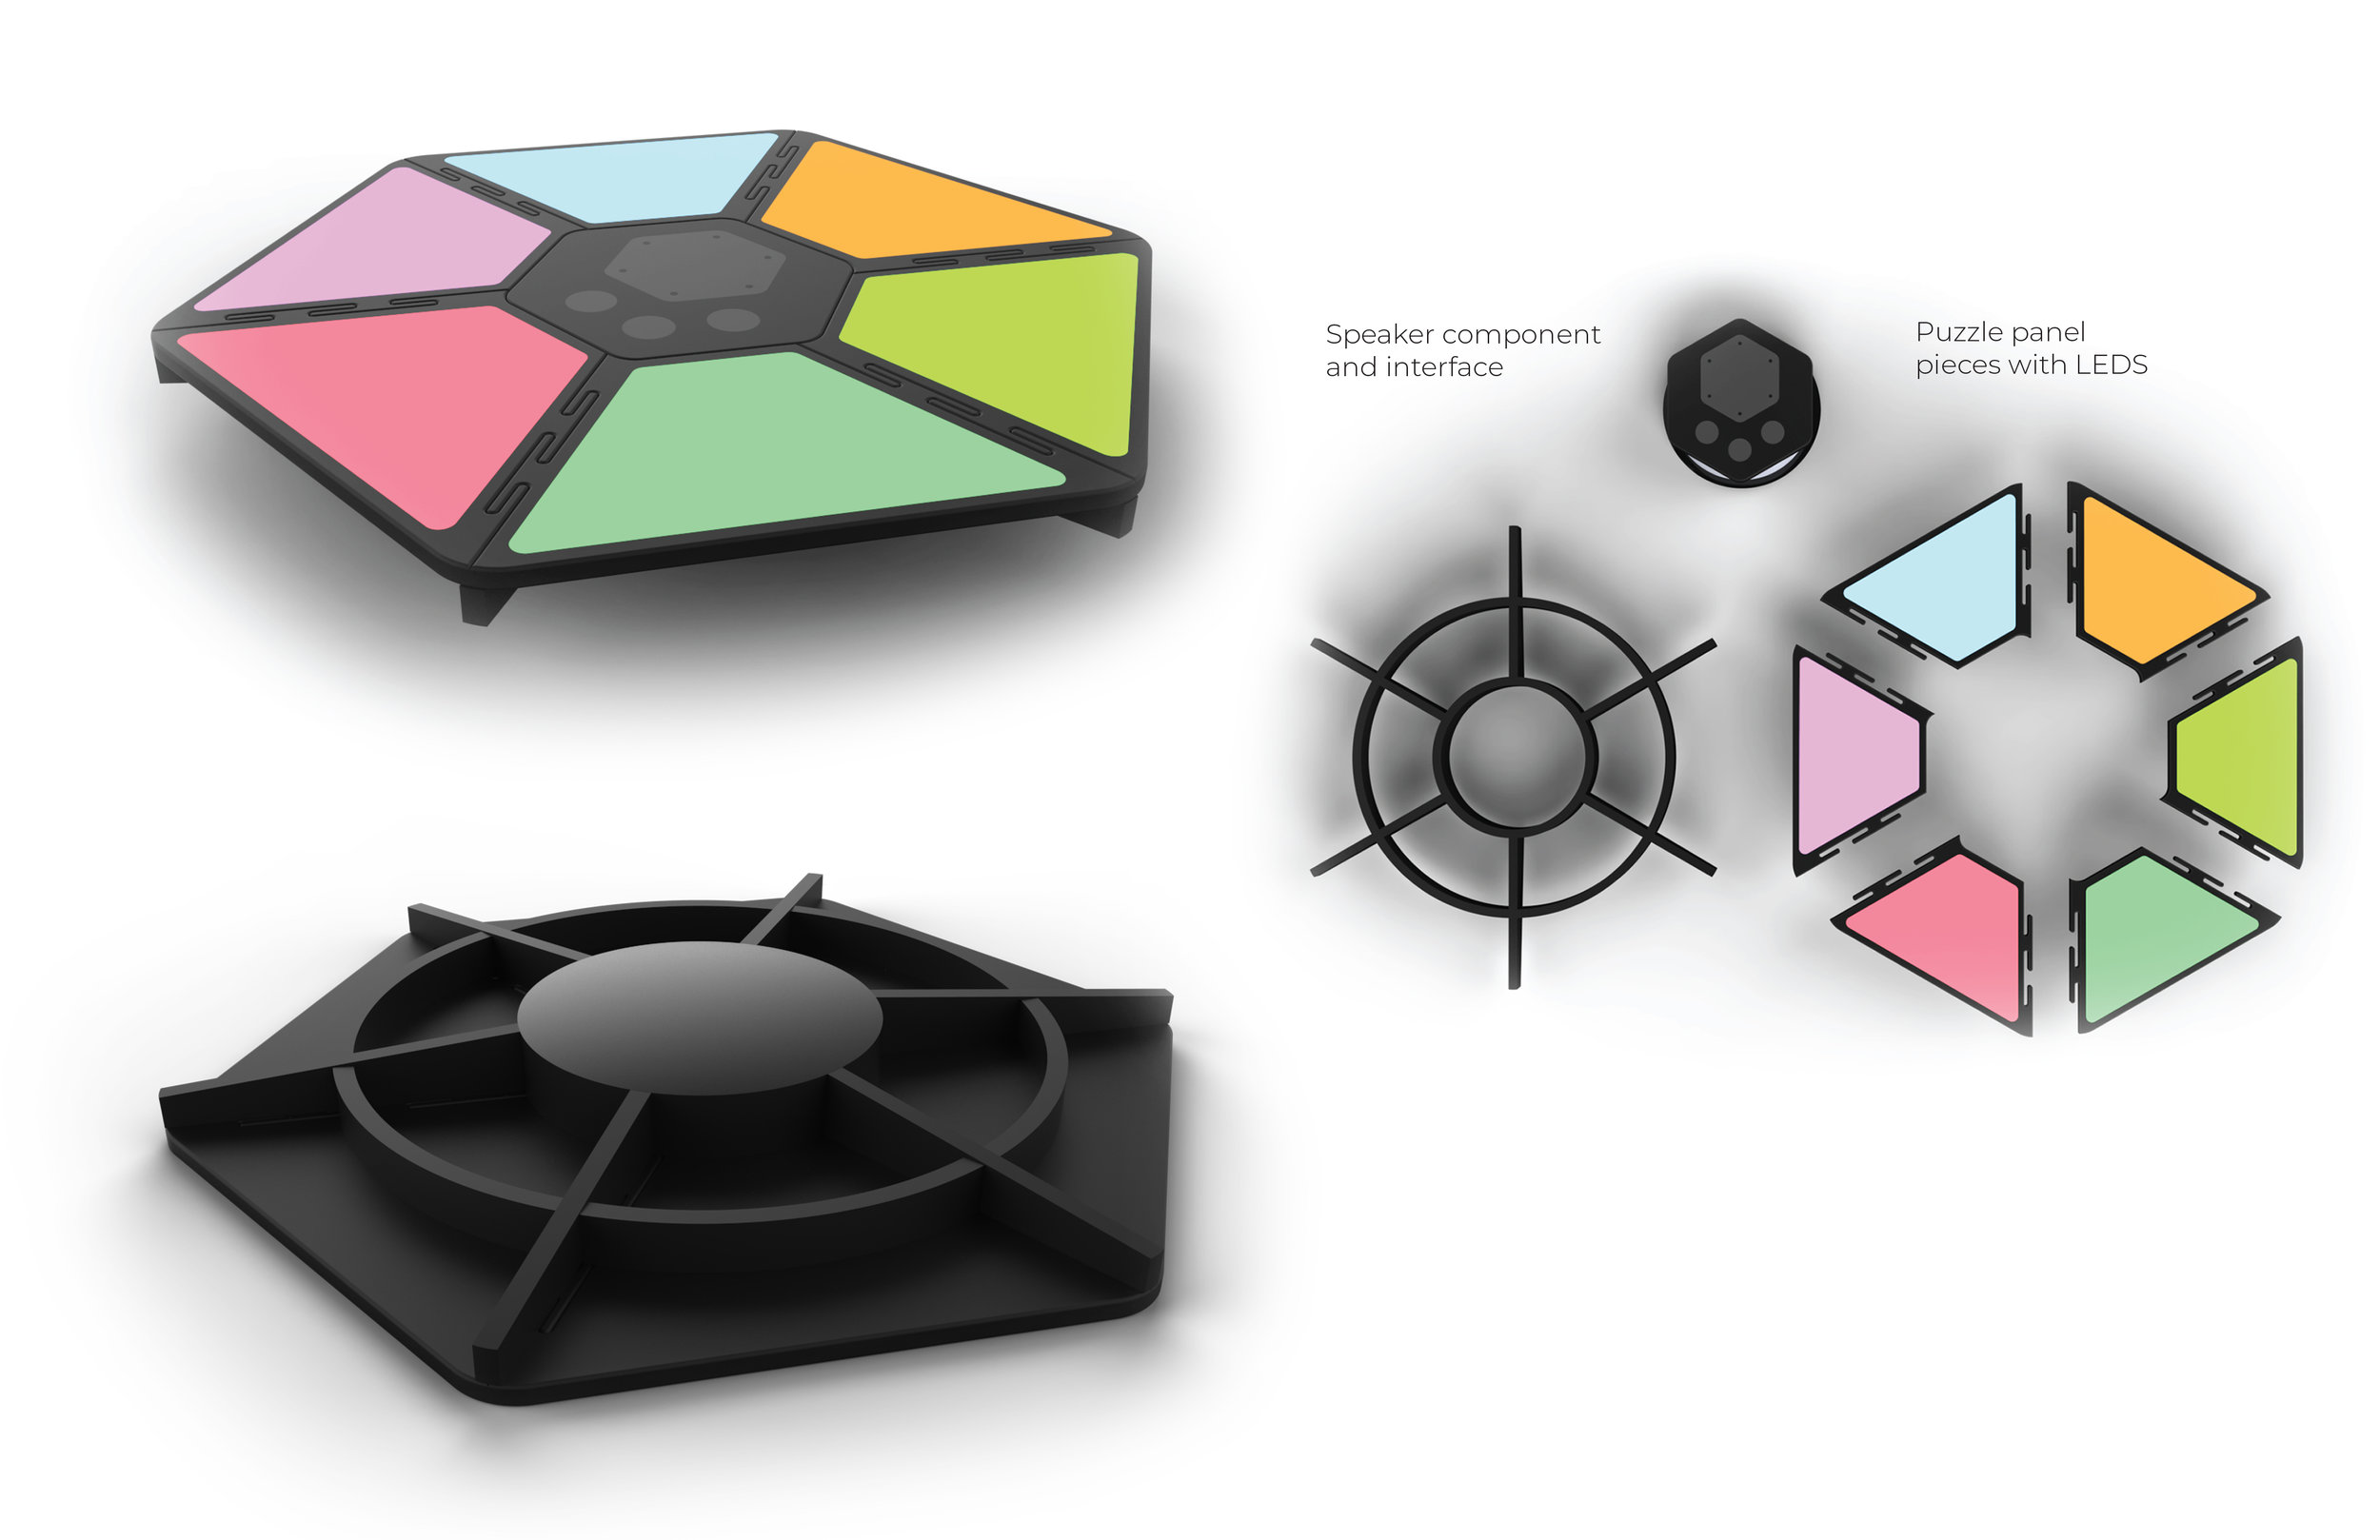 One can see the initial CAD model created for the multi-axis, modular balance board. This board utilizes a puzzle-piece formation to place the panels together and then onto a ribbed frame. Each of these panel pieces has an LED in it that would flash a particular colour and the user would have to reposition their feet onto the colors shown. The middle component is a speaker, and also holds the interface system for the device.